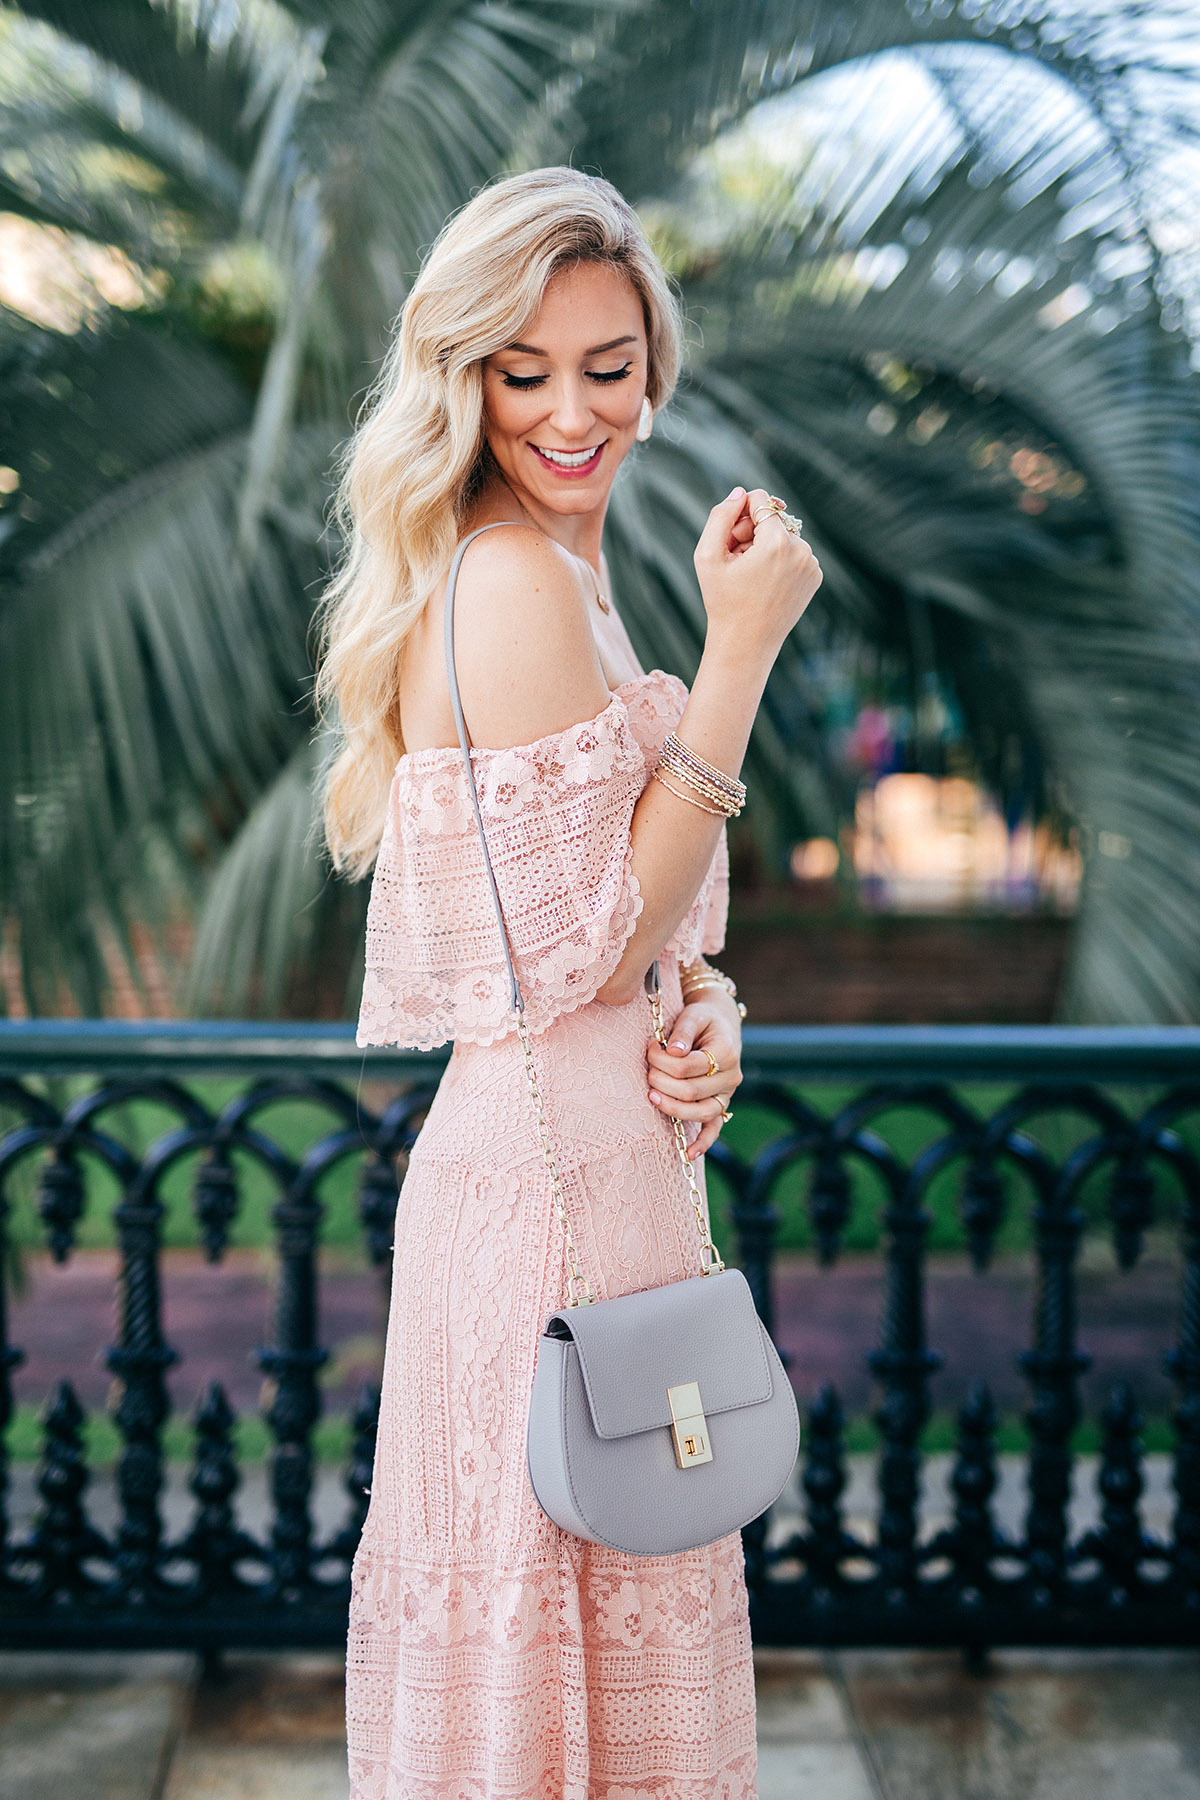 Blush lace cocktail dress | Late Summer Cocktail Dress